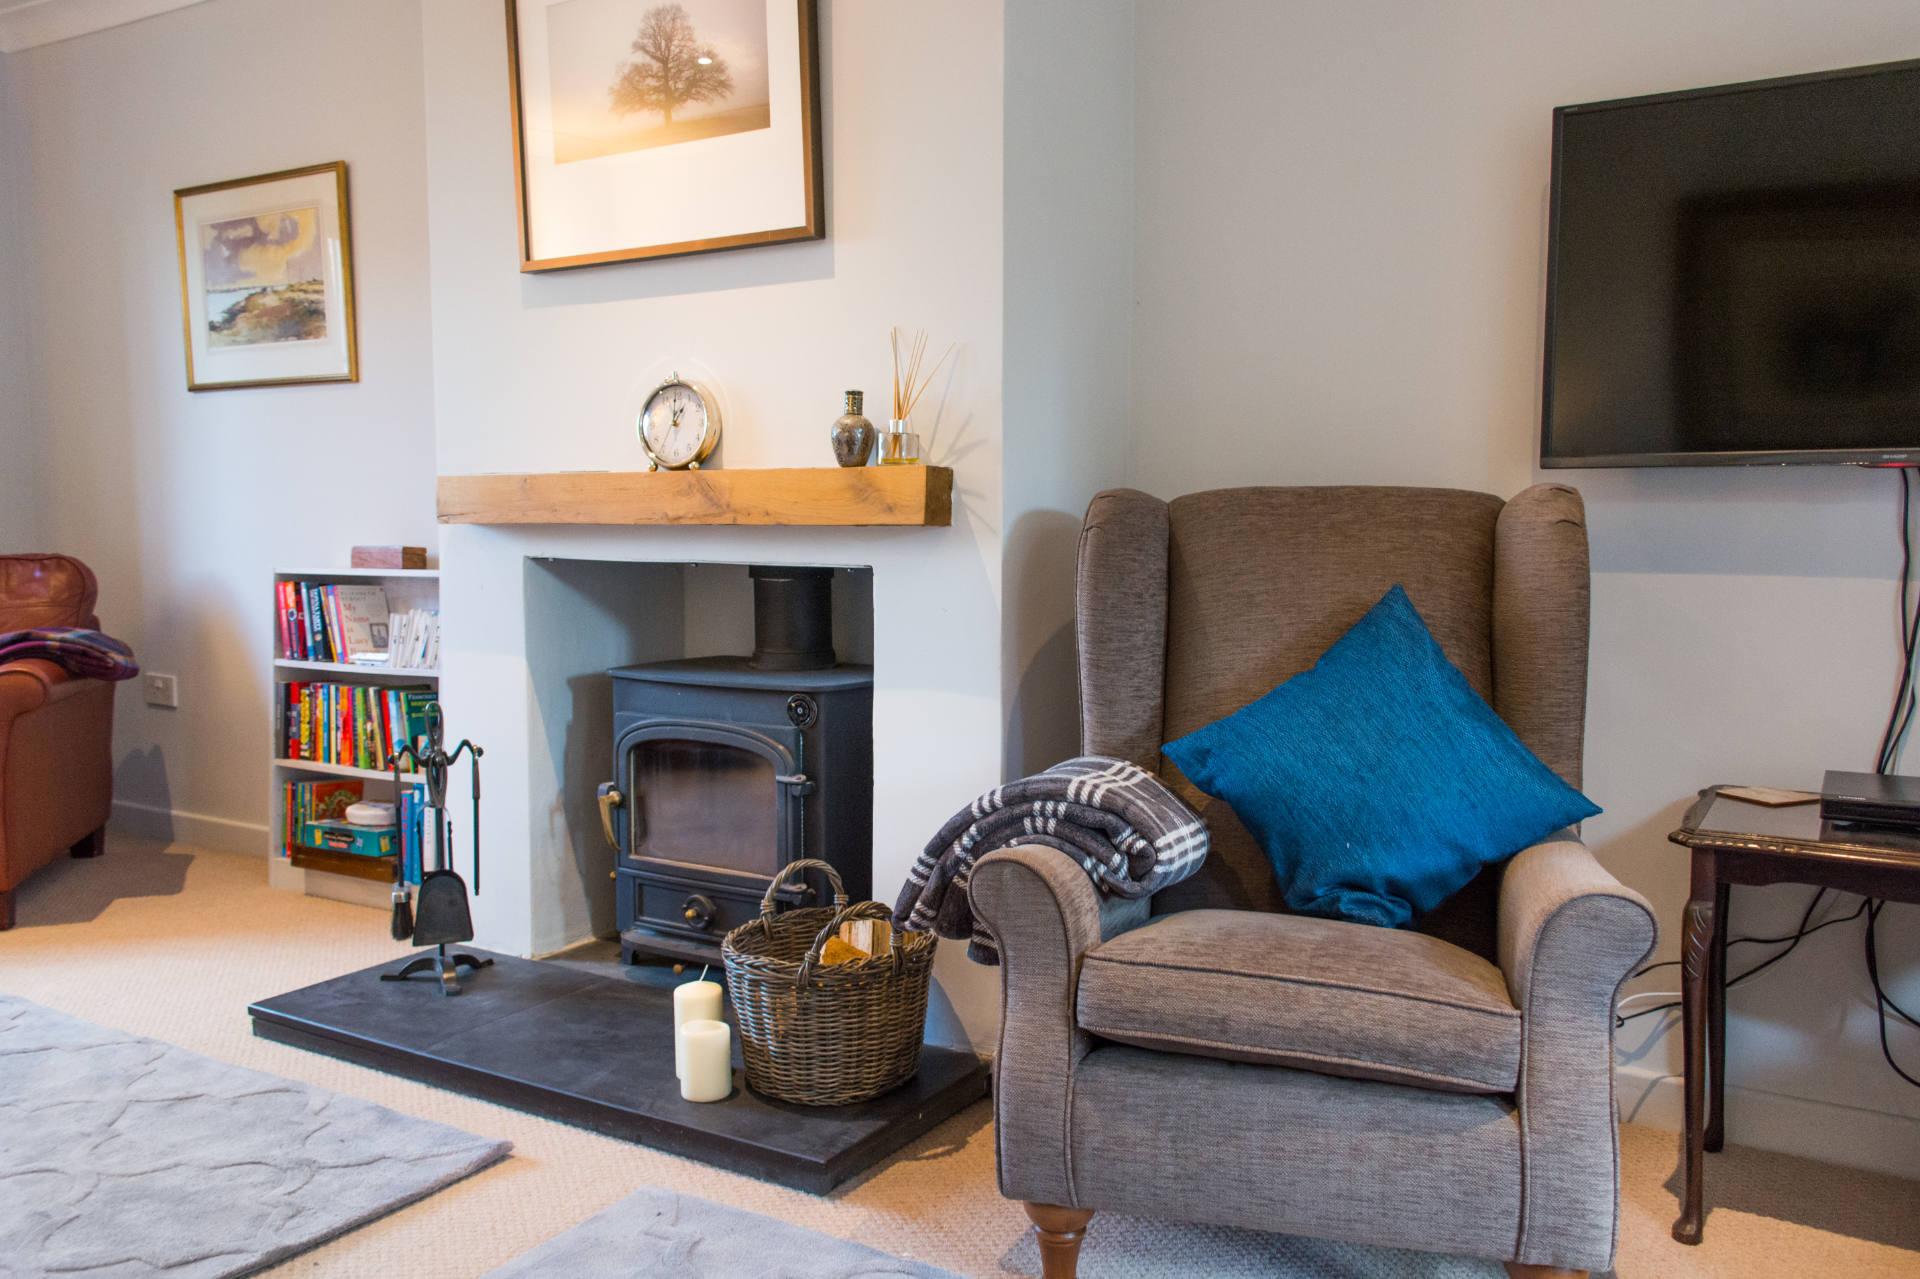 Armchair with a blue pillow next to the log burner fireplace.